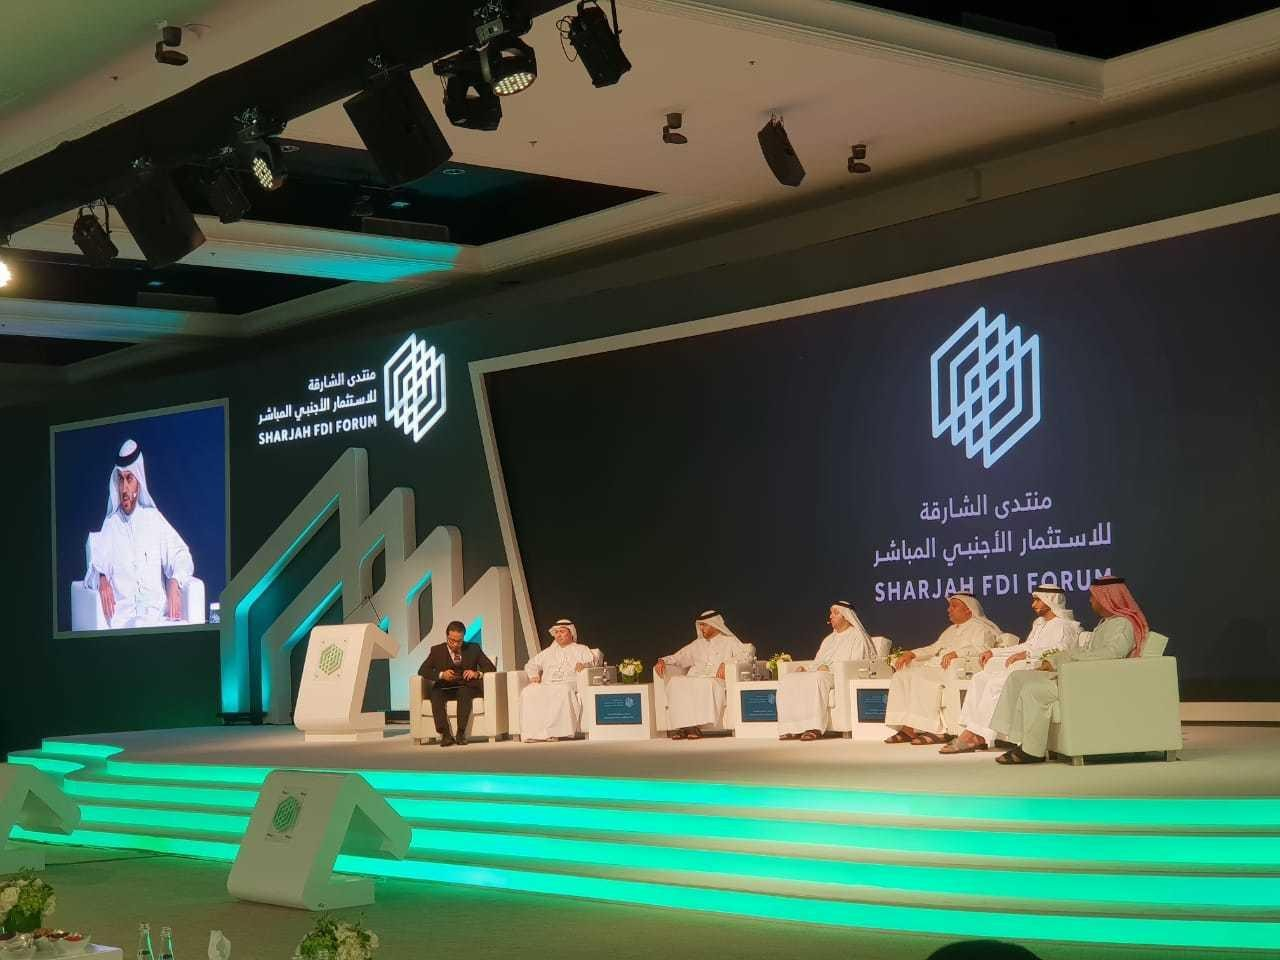 Sharjah FDI Forum 2018